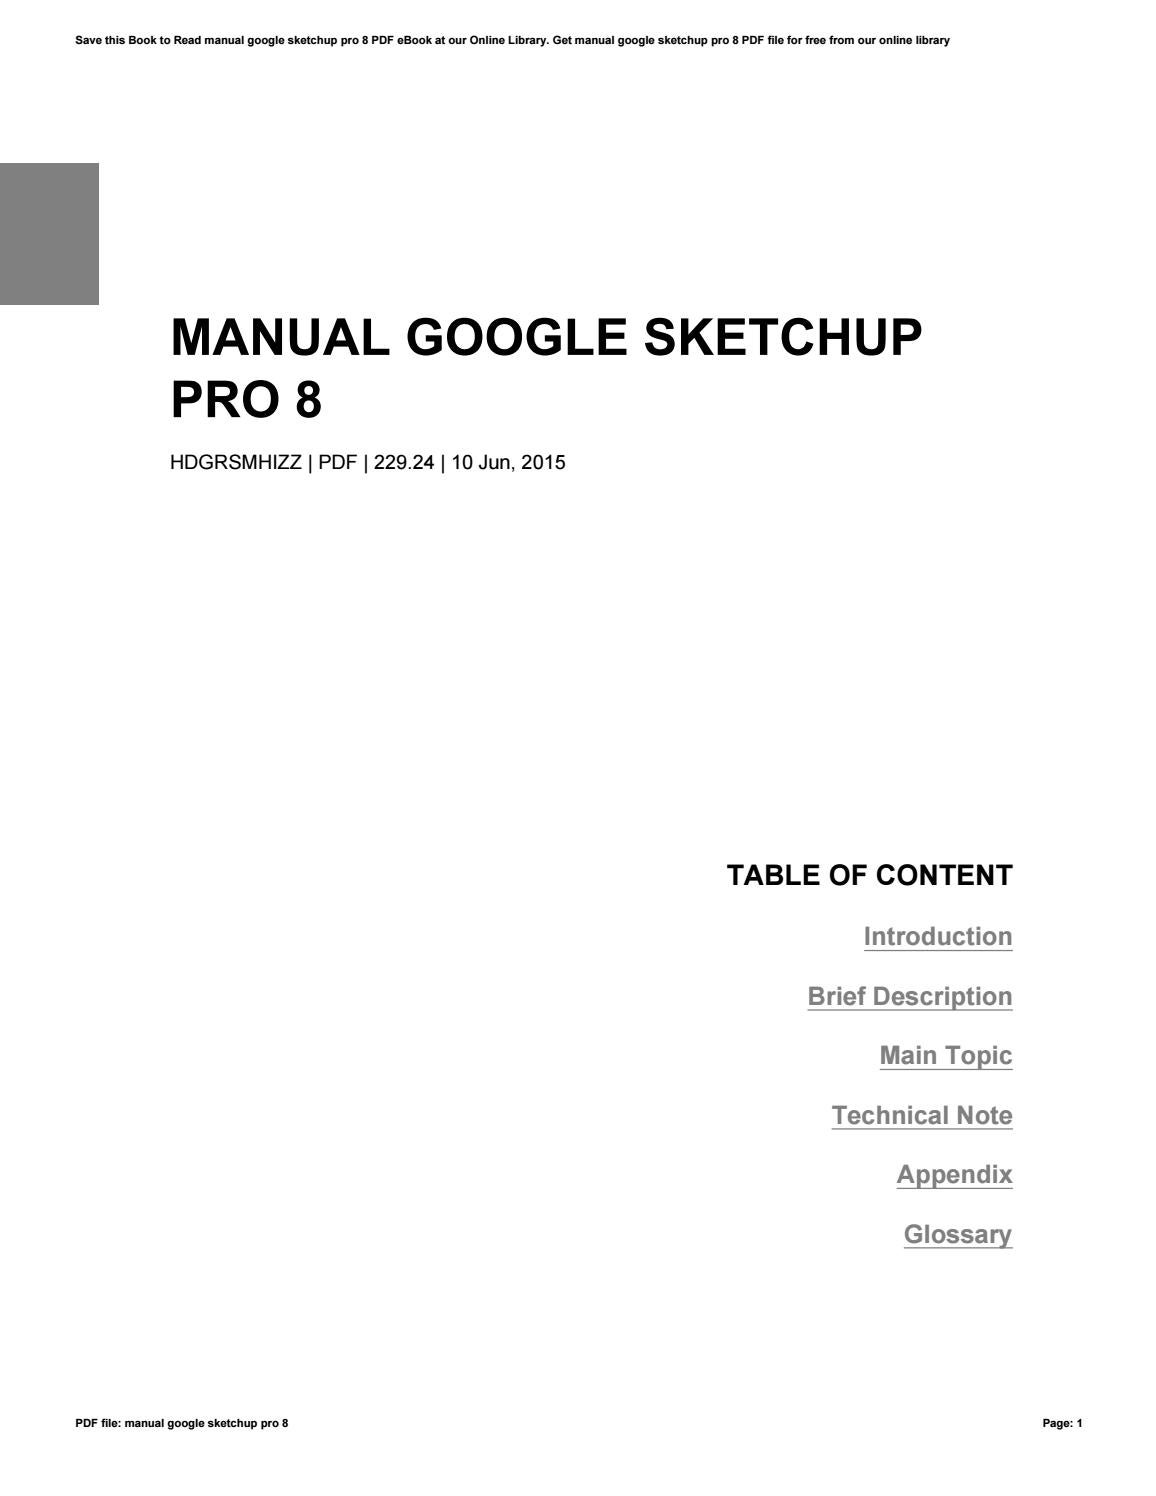 Google Sketchup Manual Free Ford Yt16h Wiring Diagram Materials Array Pro 8 By Julie Issuu Rh